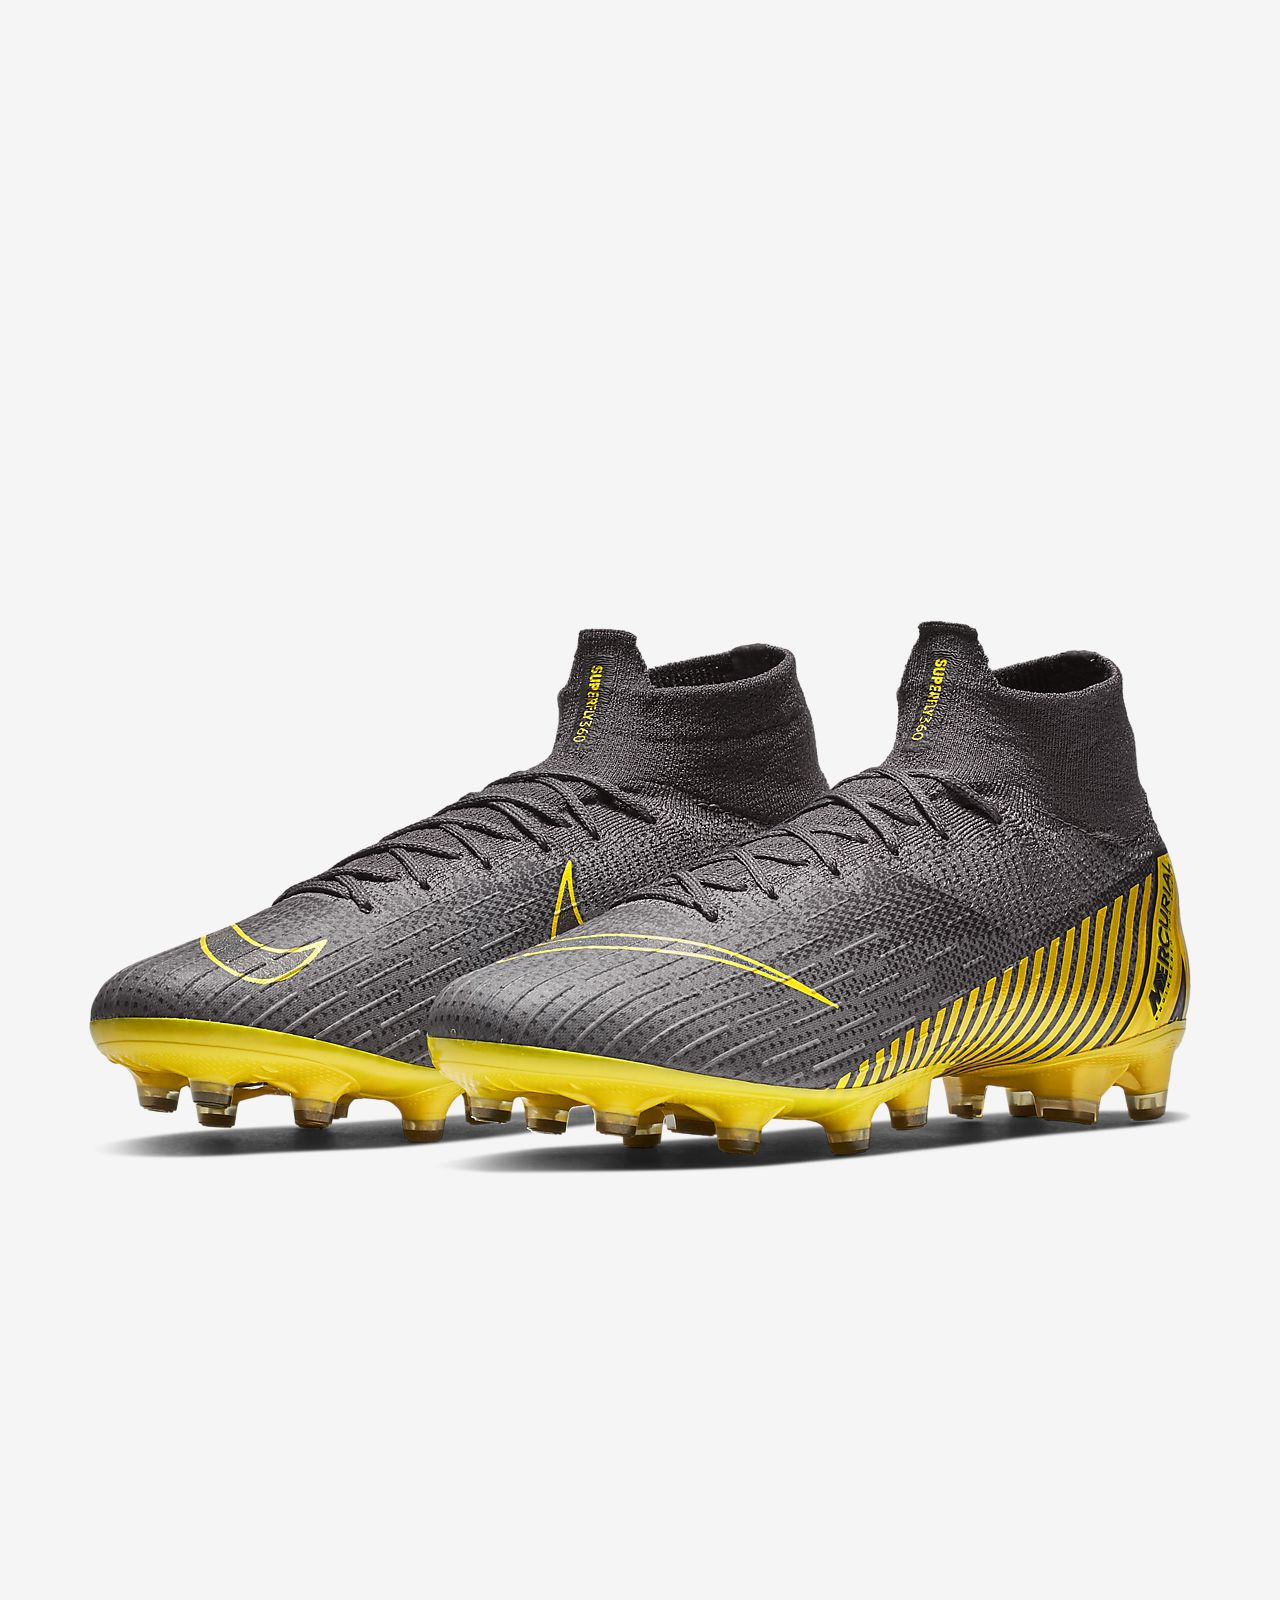 360 Pour Terrain Mercurial De À Football Pro Superfly Crampons Synthétique Ag Elite Nike Chaussure eEDHYW9I2